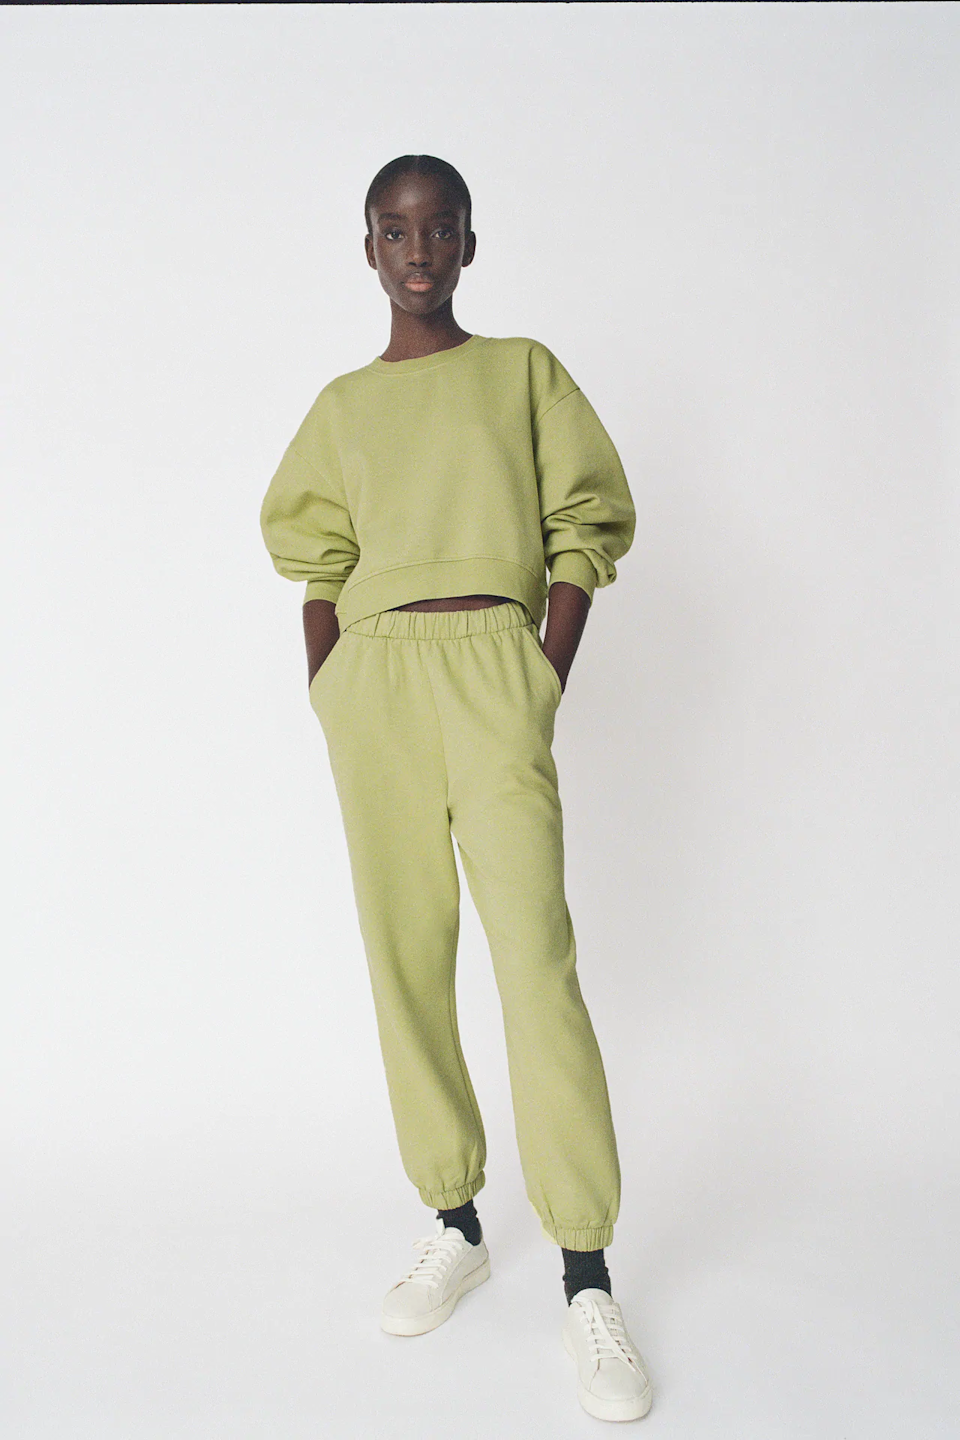 "<h3>Zara</h3><br>You can always count on Zara for an edgy loungewear option. This cool green set is sure to make you stand out in a groutfit crowd.<br><br><em>Shop <strong><a href=""https://www.zara.com/"" rel=""nofollow noopener"" target=""_blank"" data-ylk=""slk:Zara"" class=""link rapid-noclick-resp"">Zara</a></strong> </em><br><br><strong>Zara</strong> Basic Sweatshirt, $, available at <a href=""https://go.skimresources.com/?id=30283X879131&url=https%3A%2F%2Fwww.zara.com%2Fus%2Fen%2Fbasic-sweatshirt-p05584314.html"" rel=""nofollow noopener"" target=""_blank"" data-ylk=""slk:Zara"" class=""link rapid-noclick-resp"">Zara</a><br><br><strong>Zara</strong> Plush Jogging Pants, $, available at <a href=""https://go.skimresources.com/?id=30283X879131&url=https%3A%2F%2Fwww.zara.com%2Fus%2Fen%2Fplush-jogging-pants-p05584319.html"" rel=""nofollow noopener"" target=""_blank"" data-ylk=""slk:Zara"" class=""link rapid-noclick-resp"">Zara</a>"